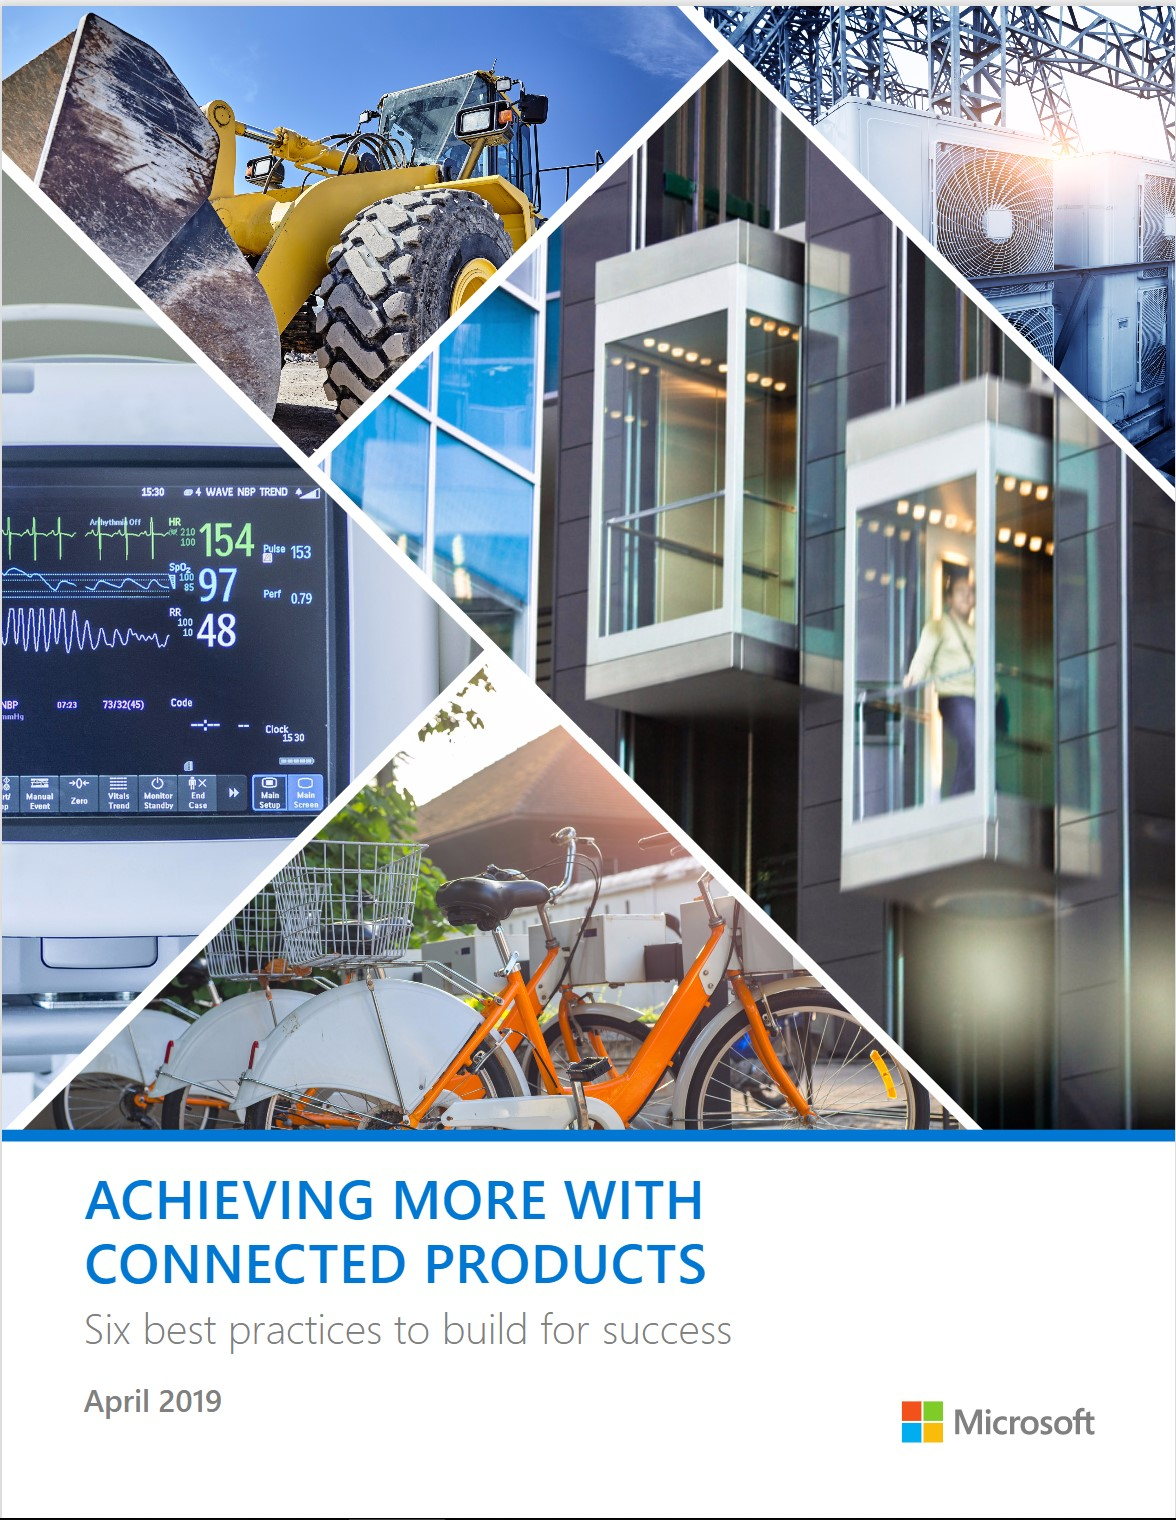 Achieving more with connected products